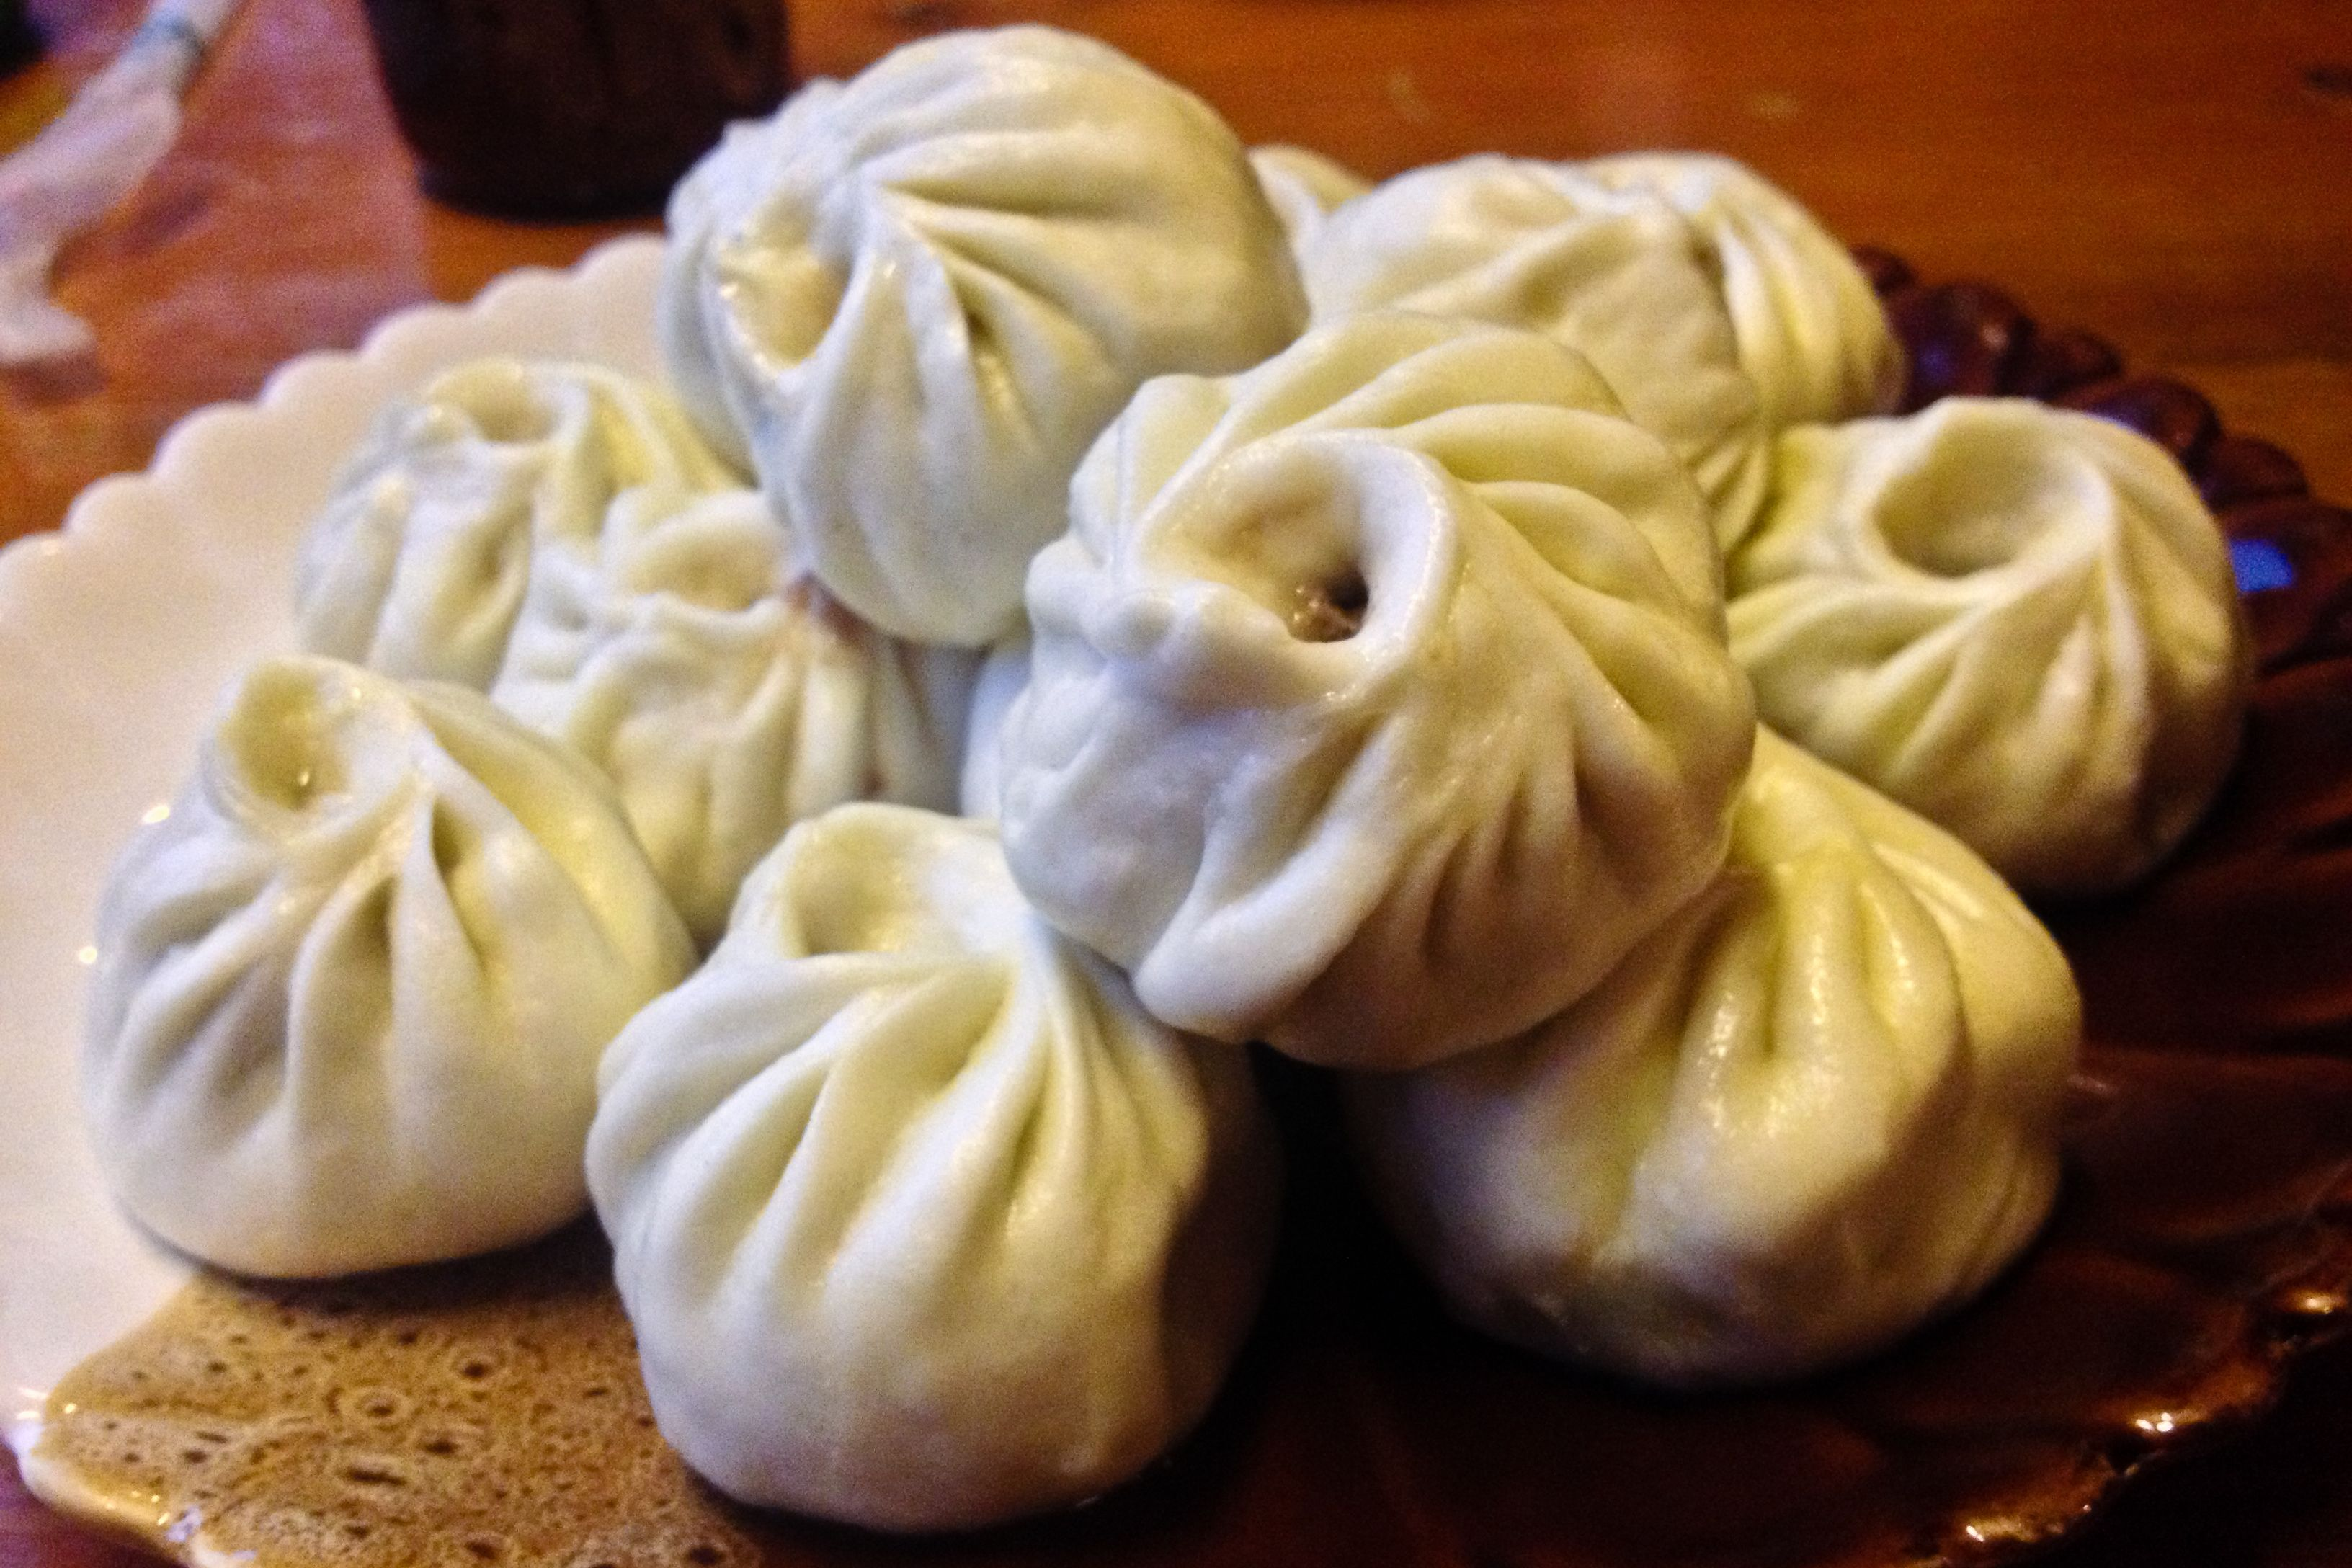 15 Traditional Chinese Foods You've Got to Try